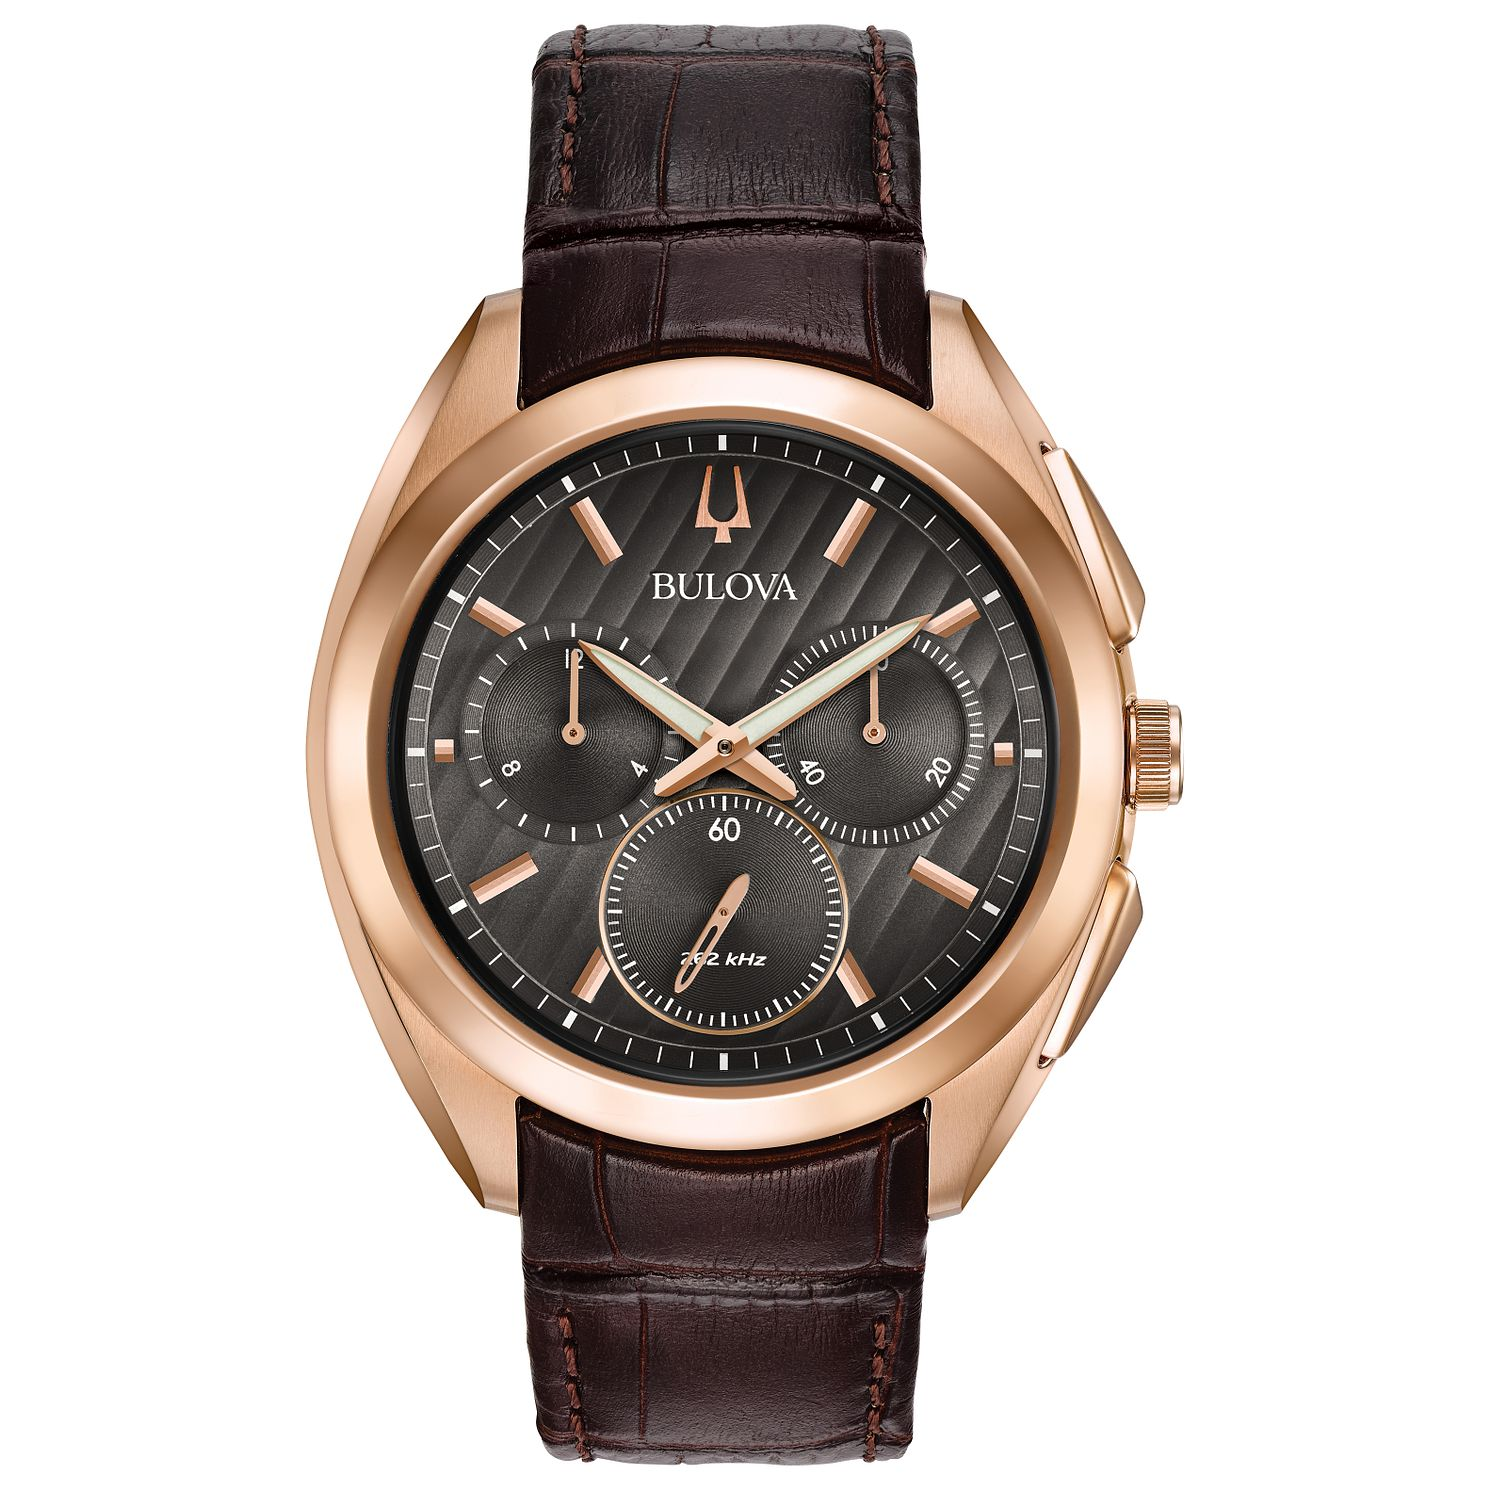 Bulova Curv Men's Chronograph Rose Gold Plated Strap Watch - Product number 5239907